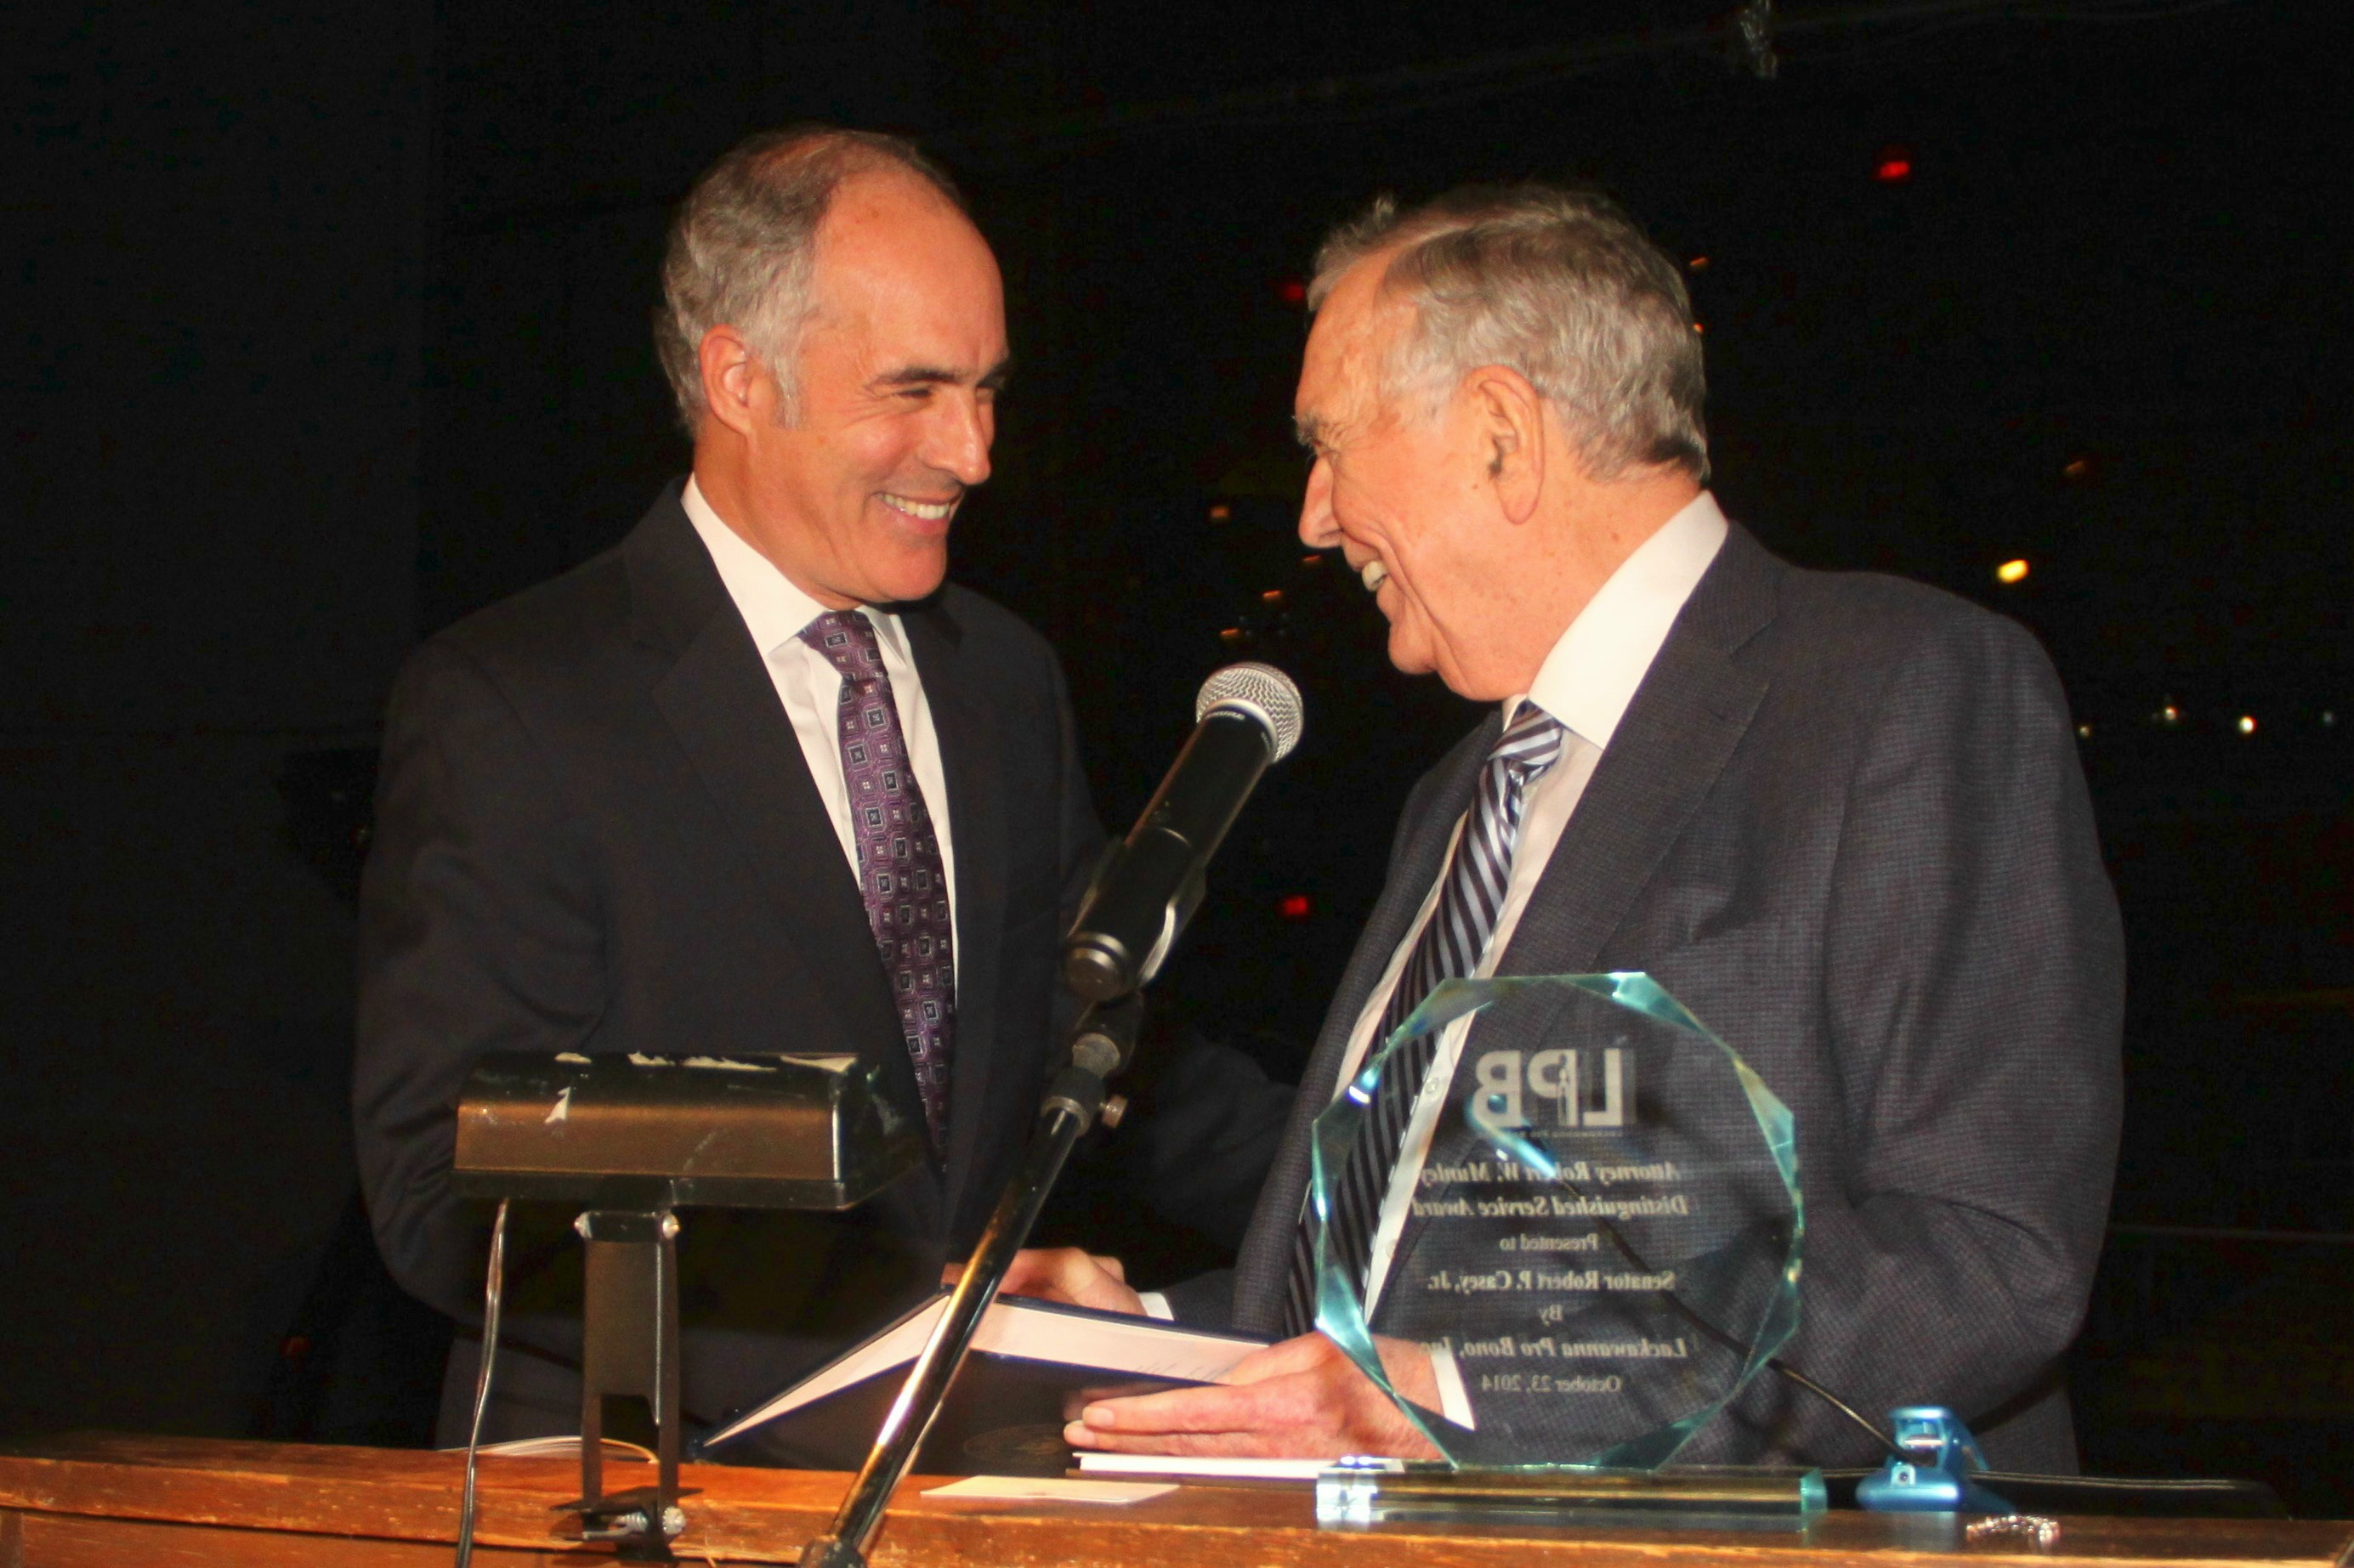 Attorney Robert W. Munley Presents Award to Senator Robert P. Casey, Jr.